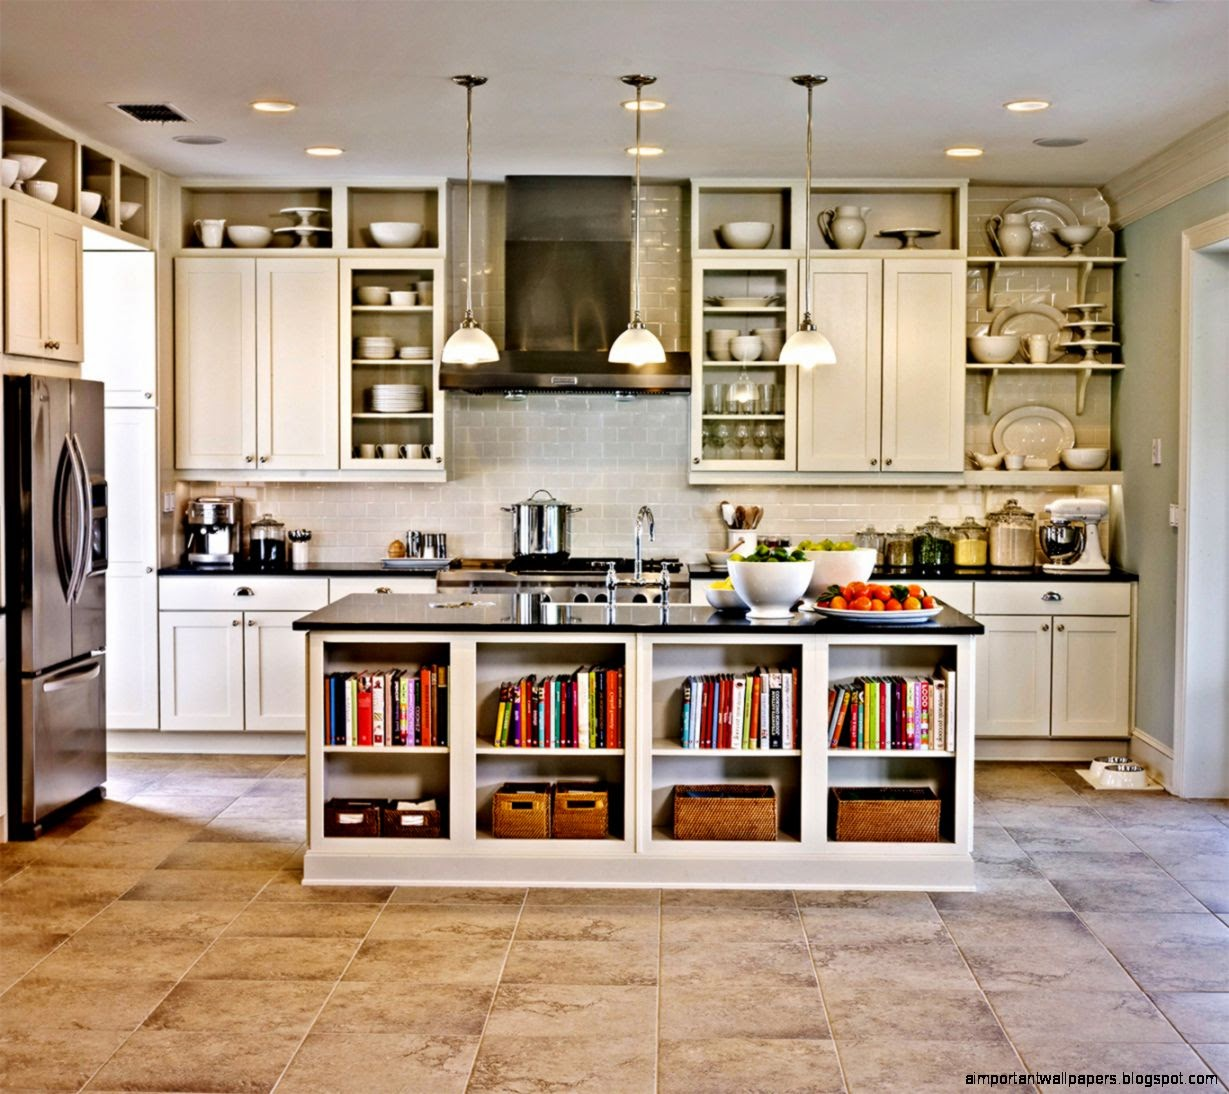 Kitchen Cabinets Decorating | Important Wallpapers